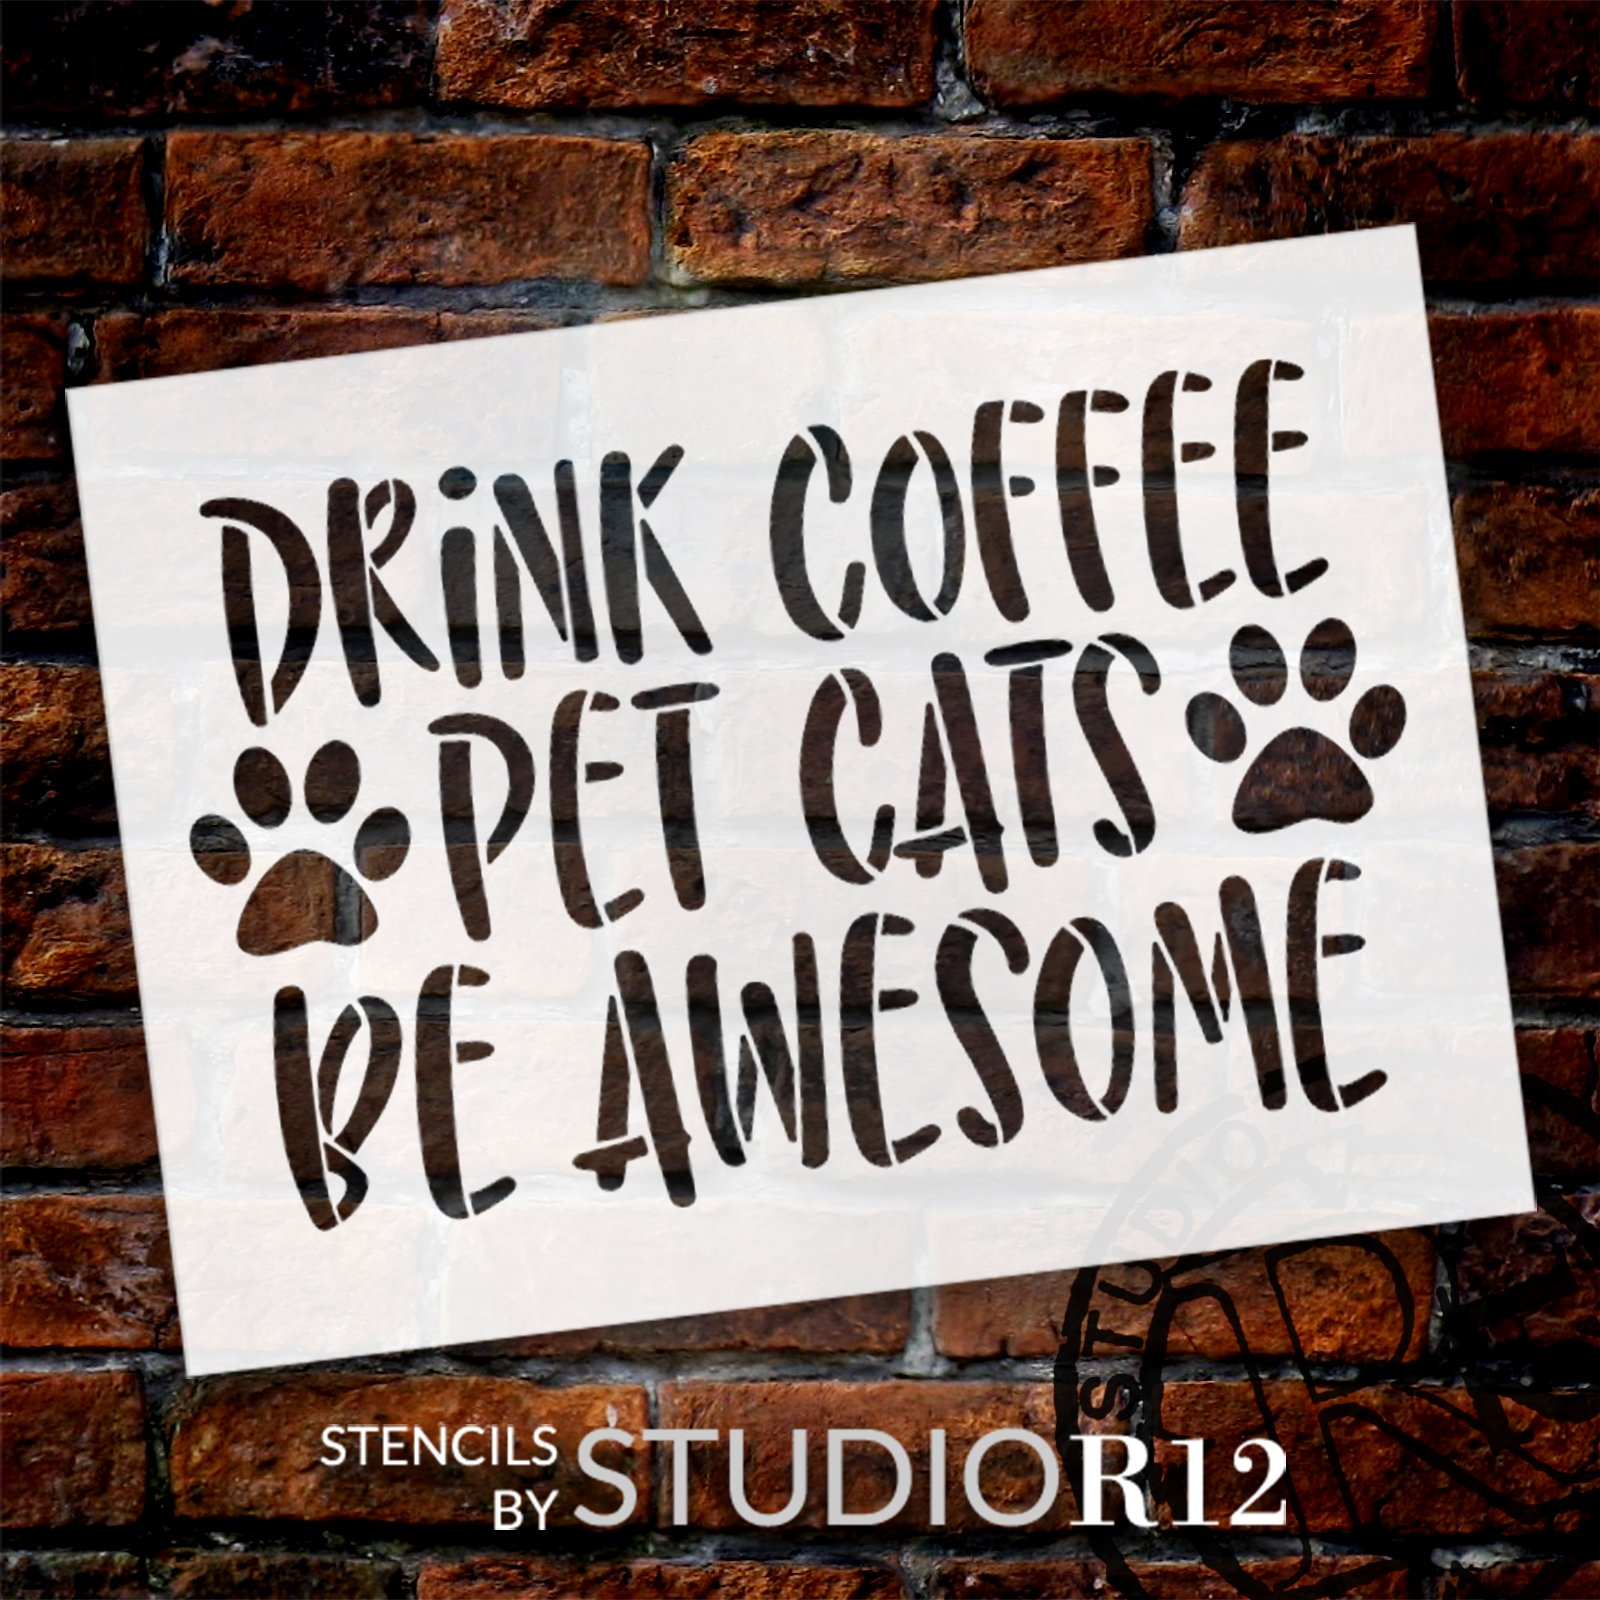 Drink Coffee Pet Cats Be Awesome Stencil by StudioR12 | Craft DIY Home Decor | Paint Pet Paw Heart Wood Sign | Reusable Mylar Template | Select Size